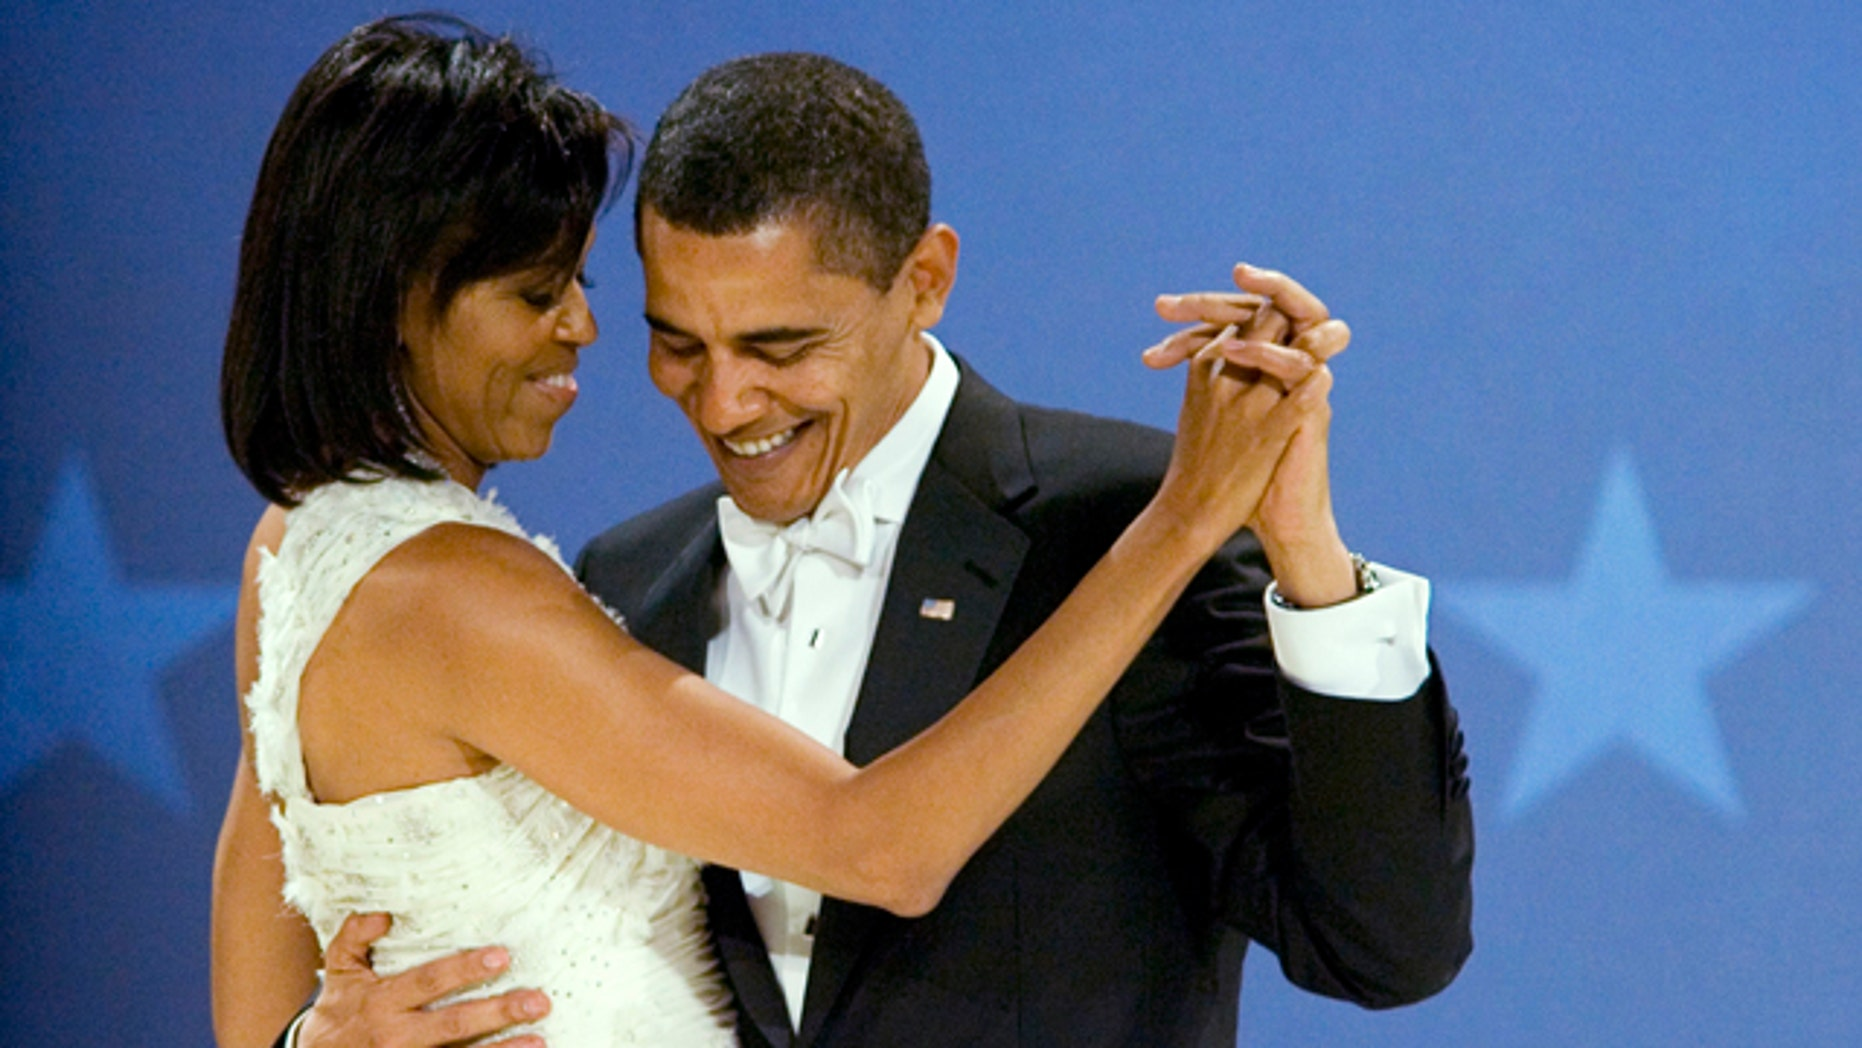 Here's Michelle Obama's advice for couples this Valentine's Day: Laugh with your partner.